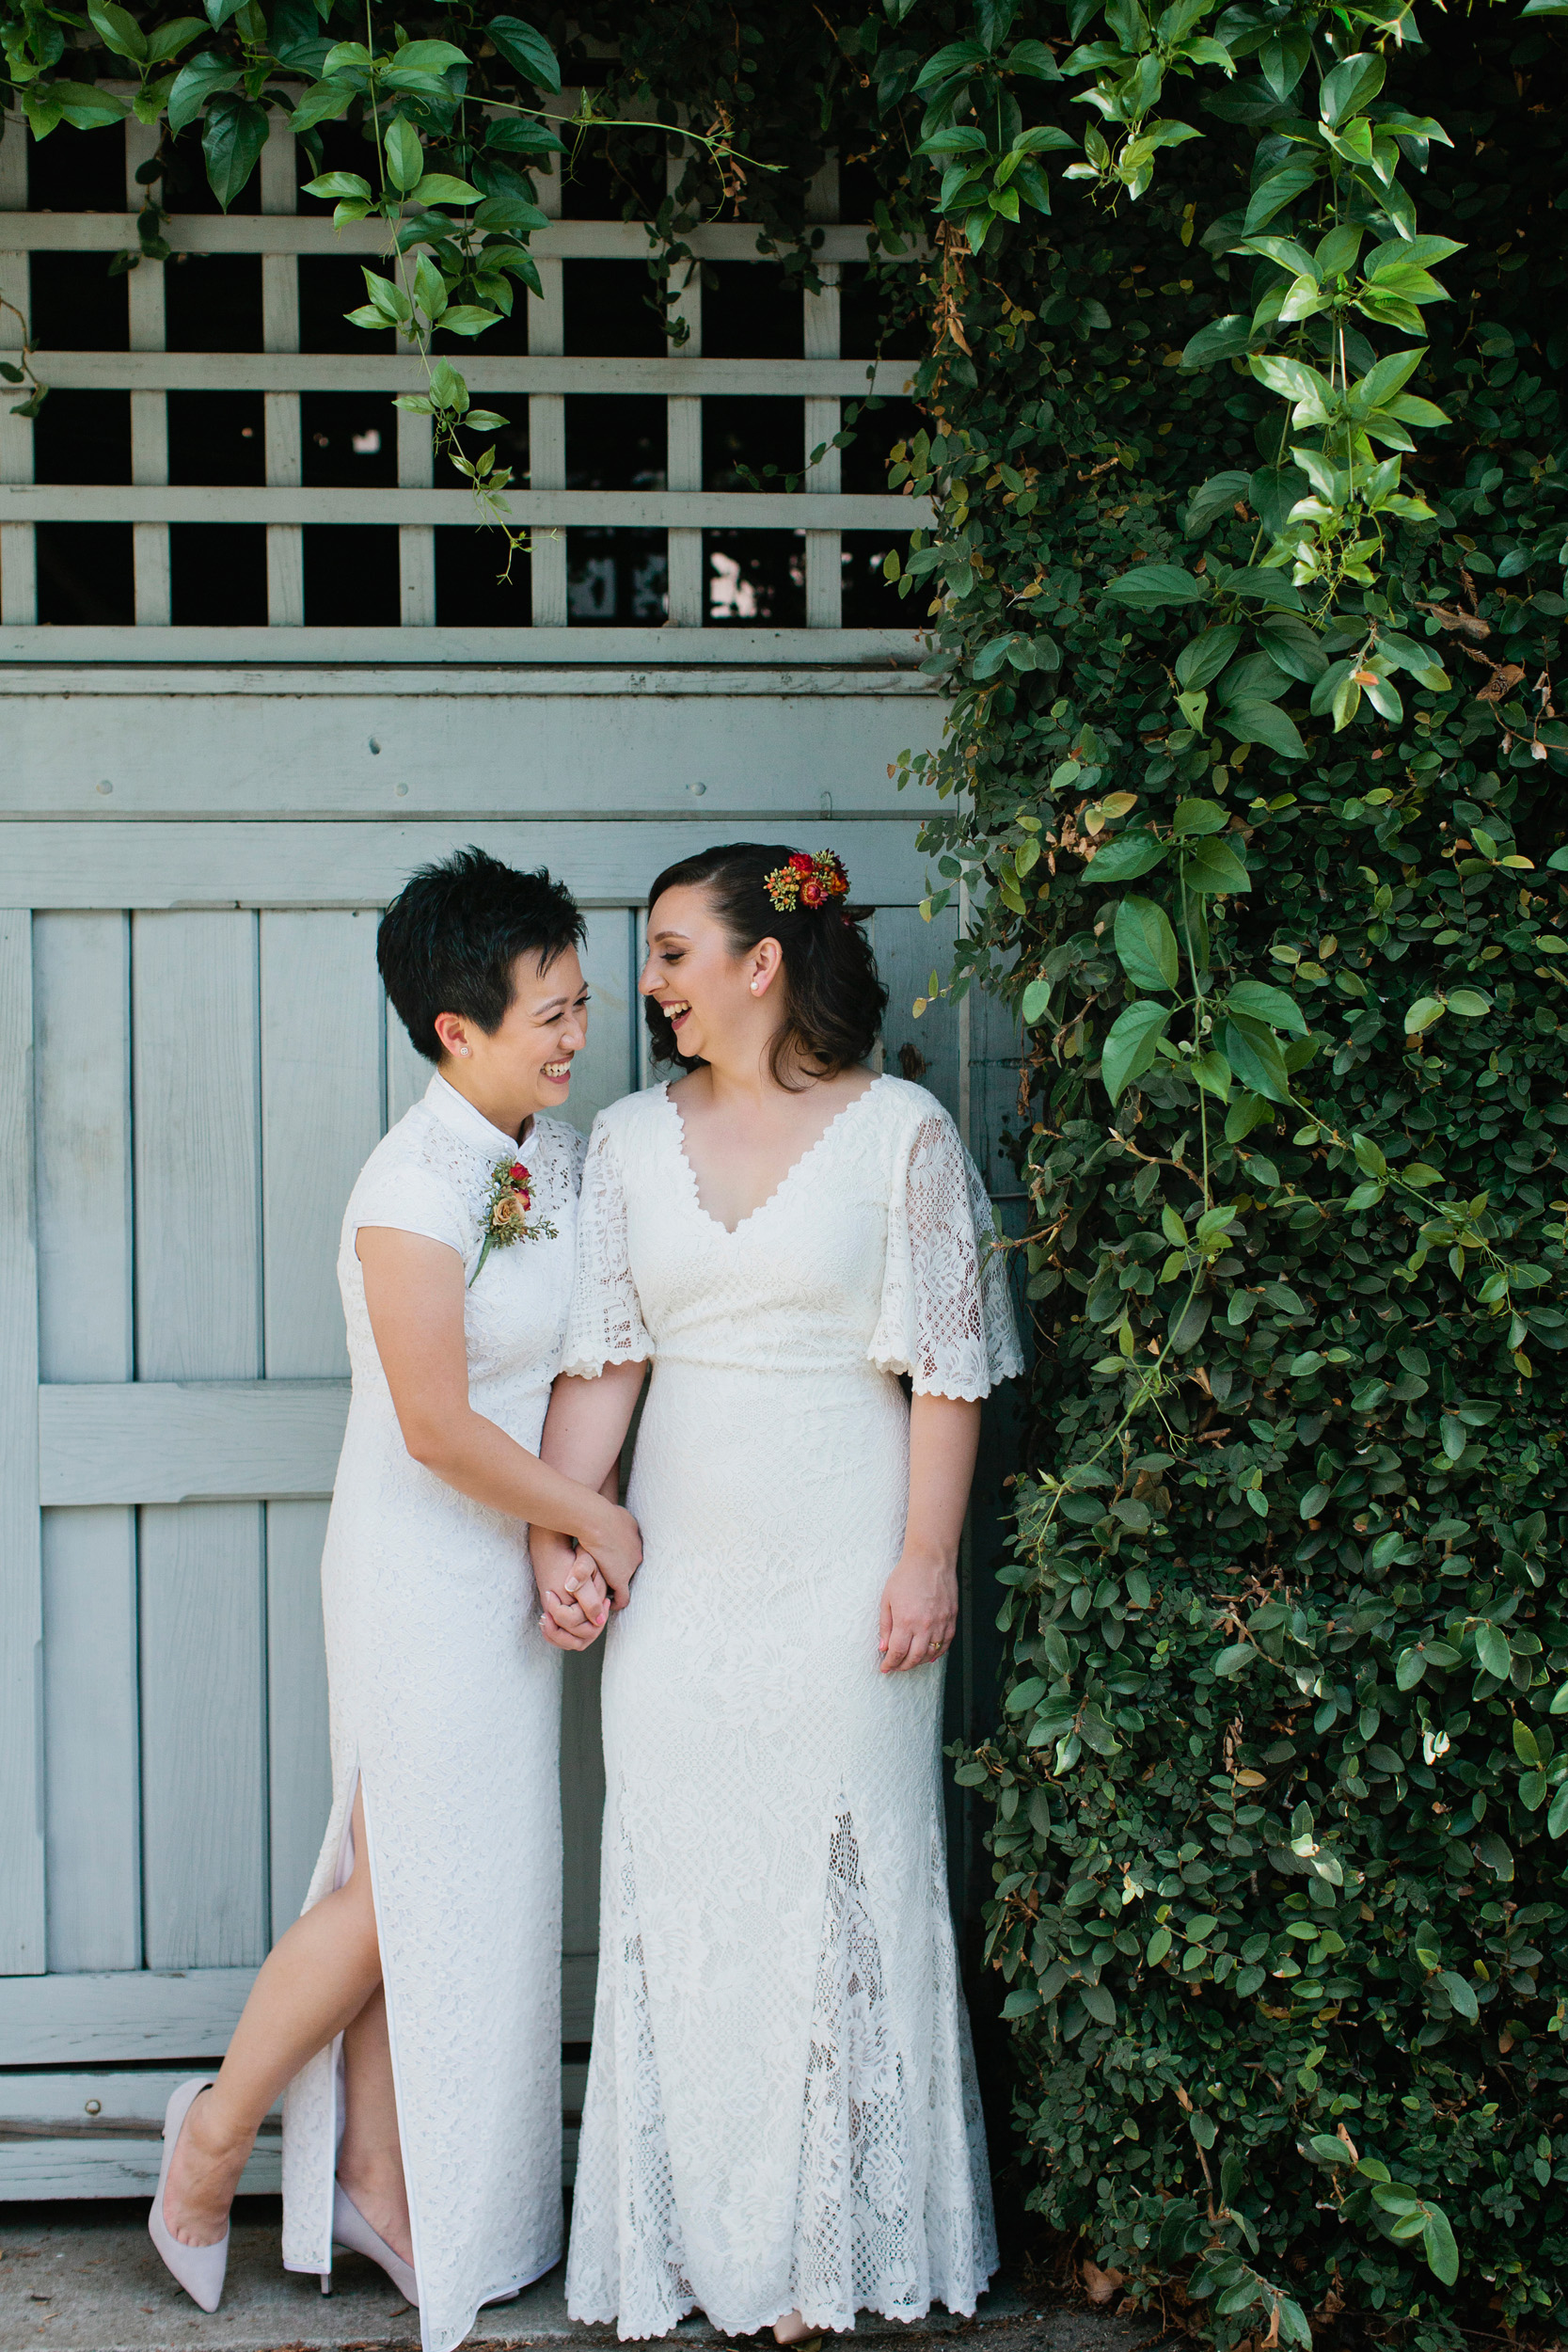 We scouted a beautiful vine wall for Kylie and Sophia's portraits but found it had been cut down on their wedding day. Luckily, we moved on to this garage door as an alternative.